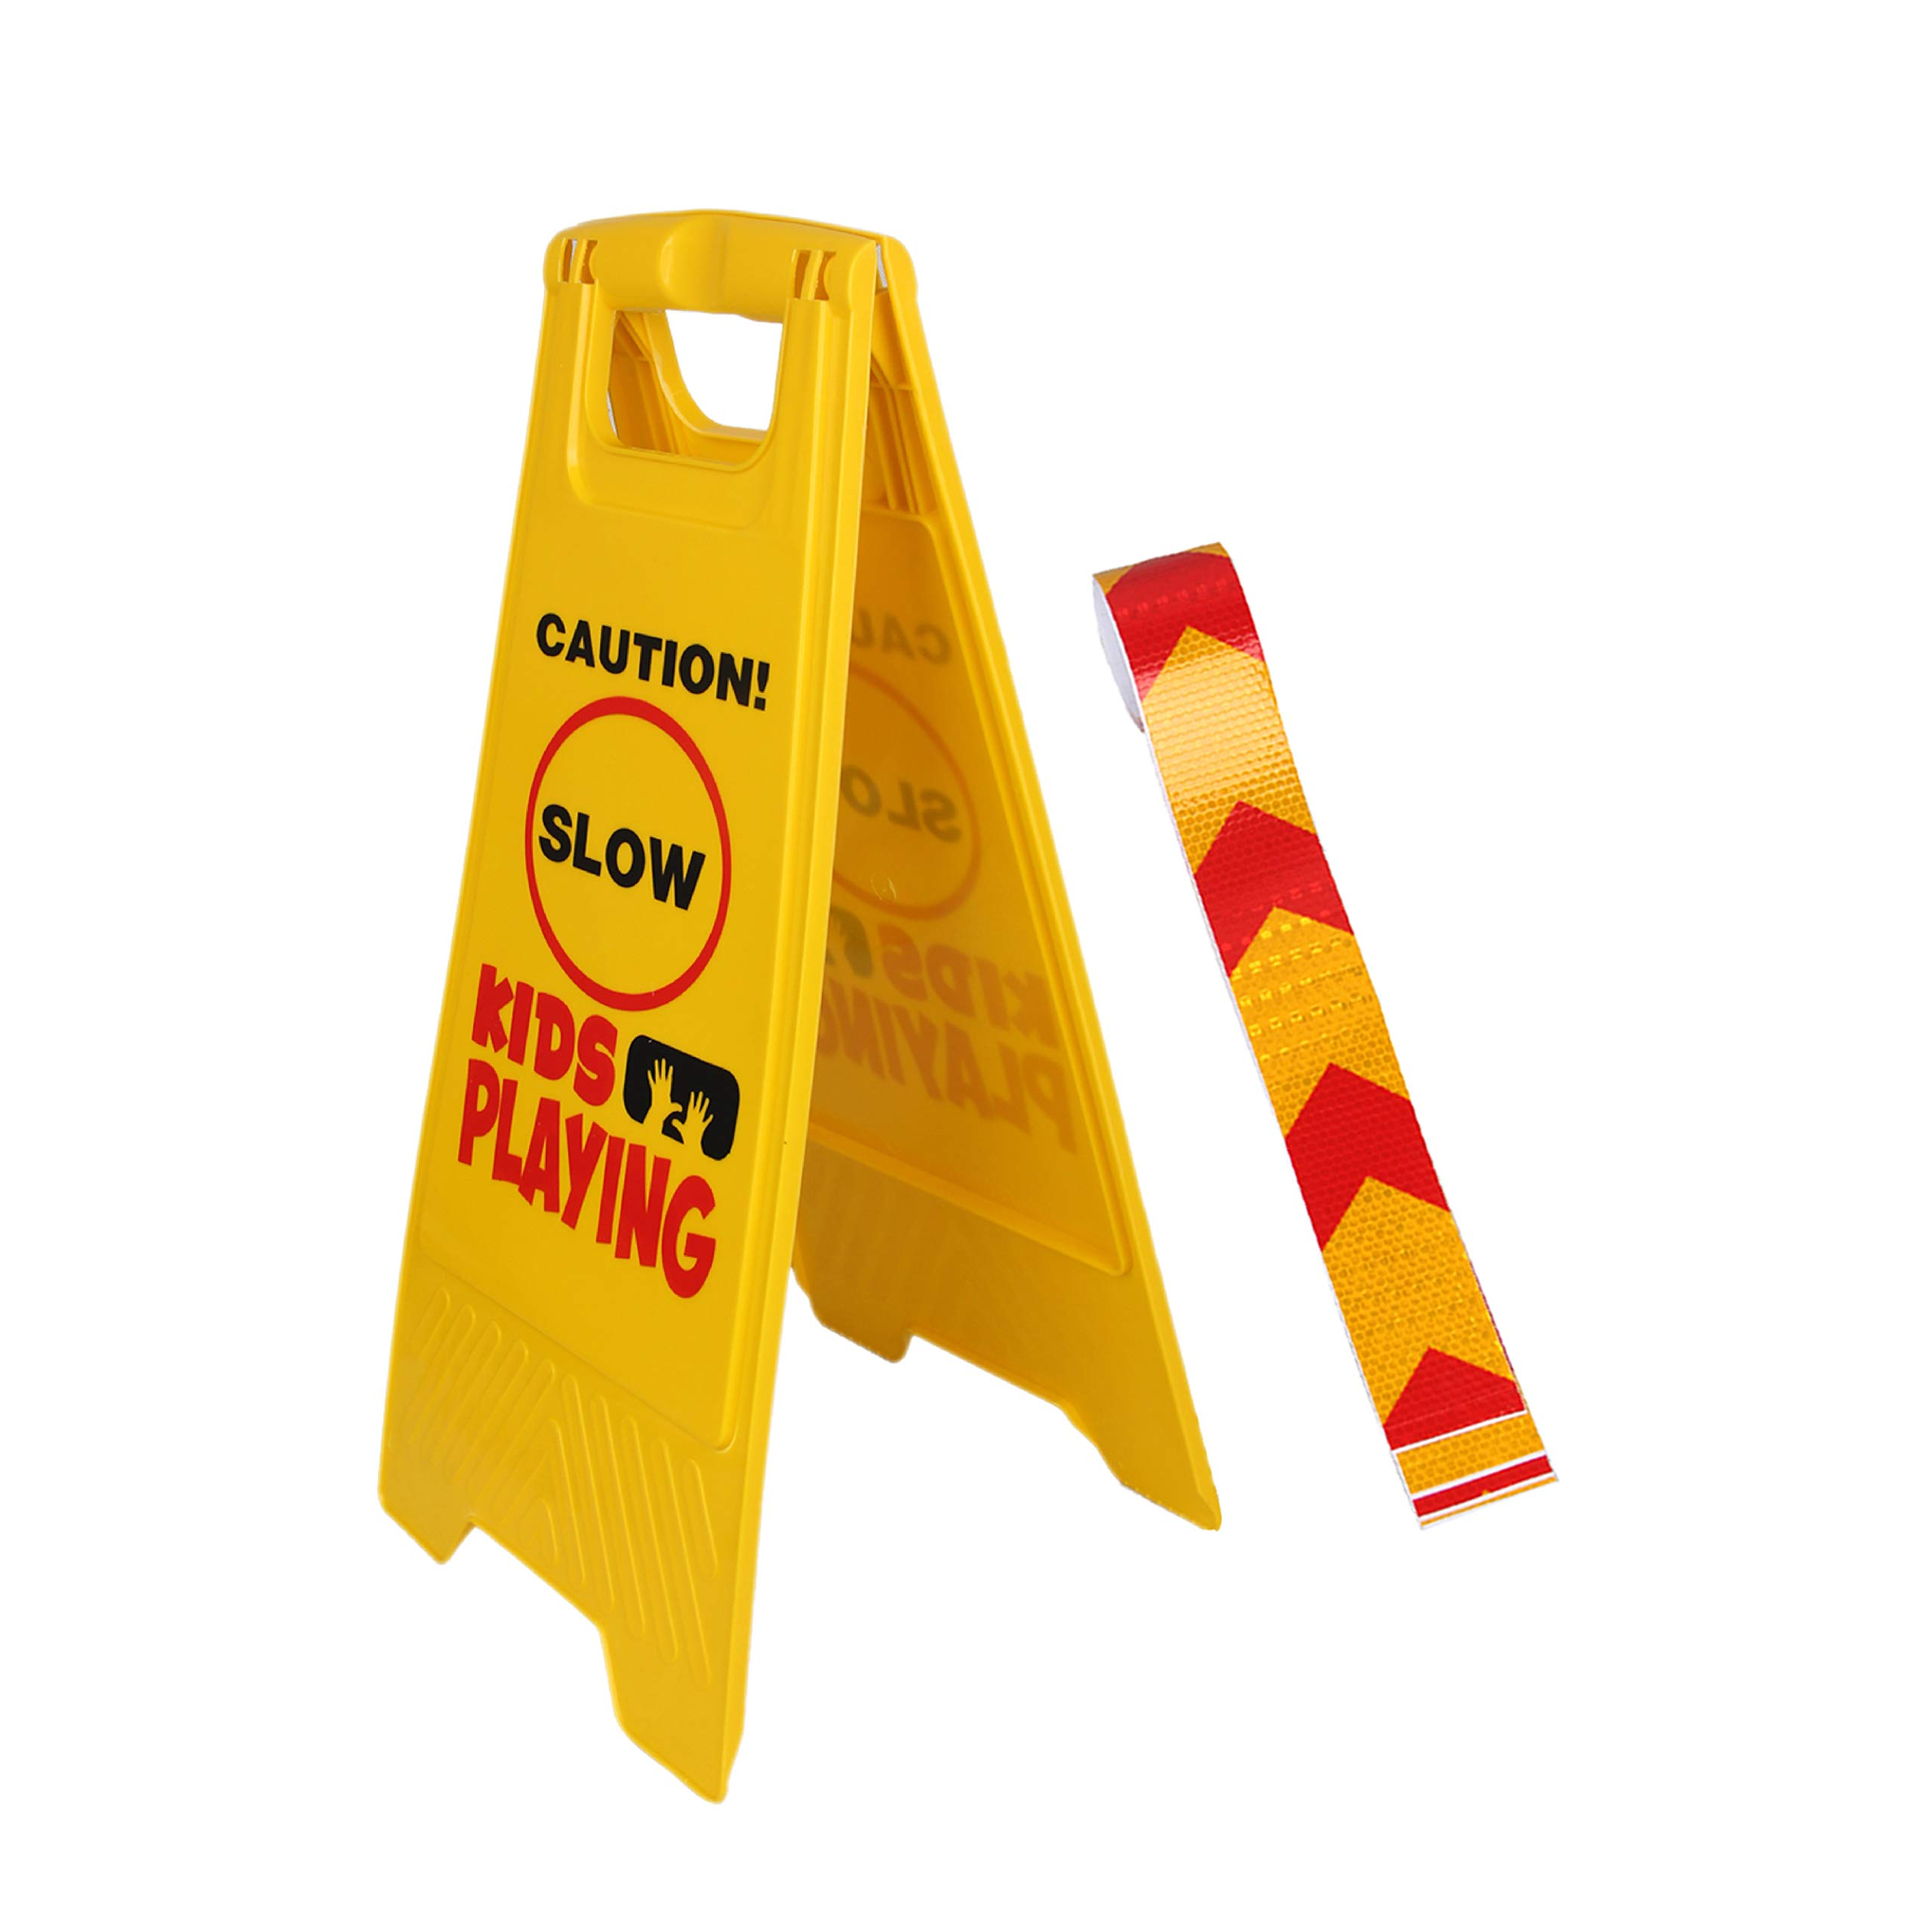 Kid Playing Caution Sign – Children Safety Slow Road Yard Sign - Double Sided Sign Bundled with Reflective Tape by Budgetizer (Image #1)